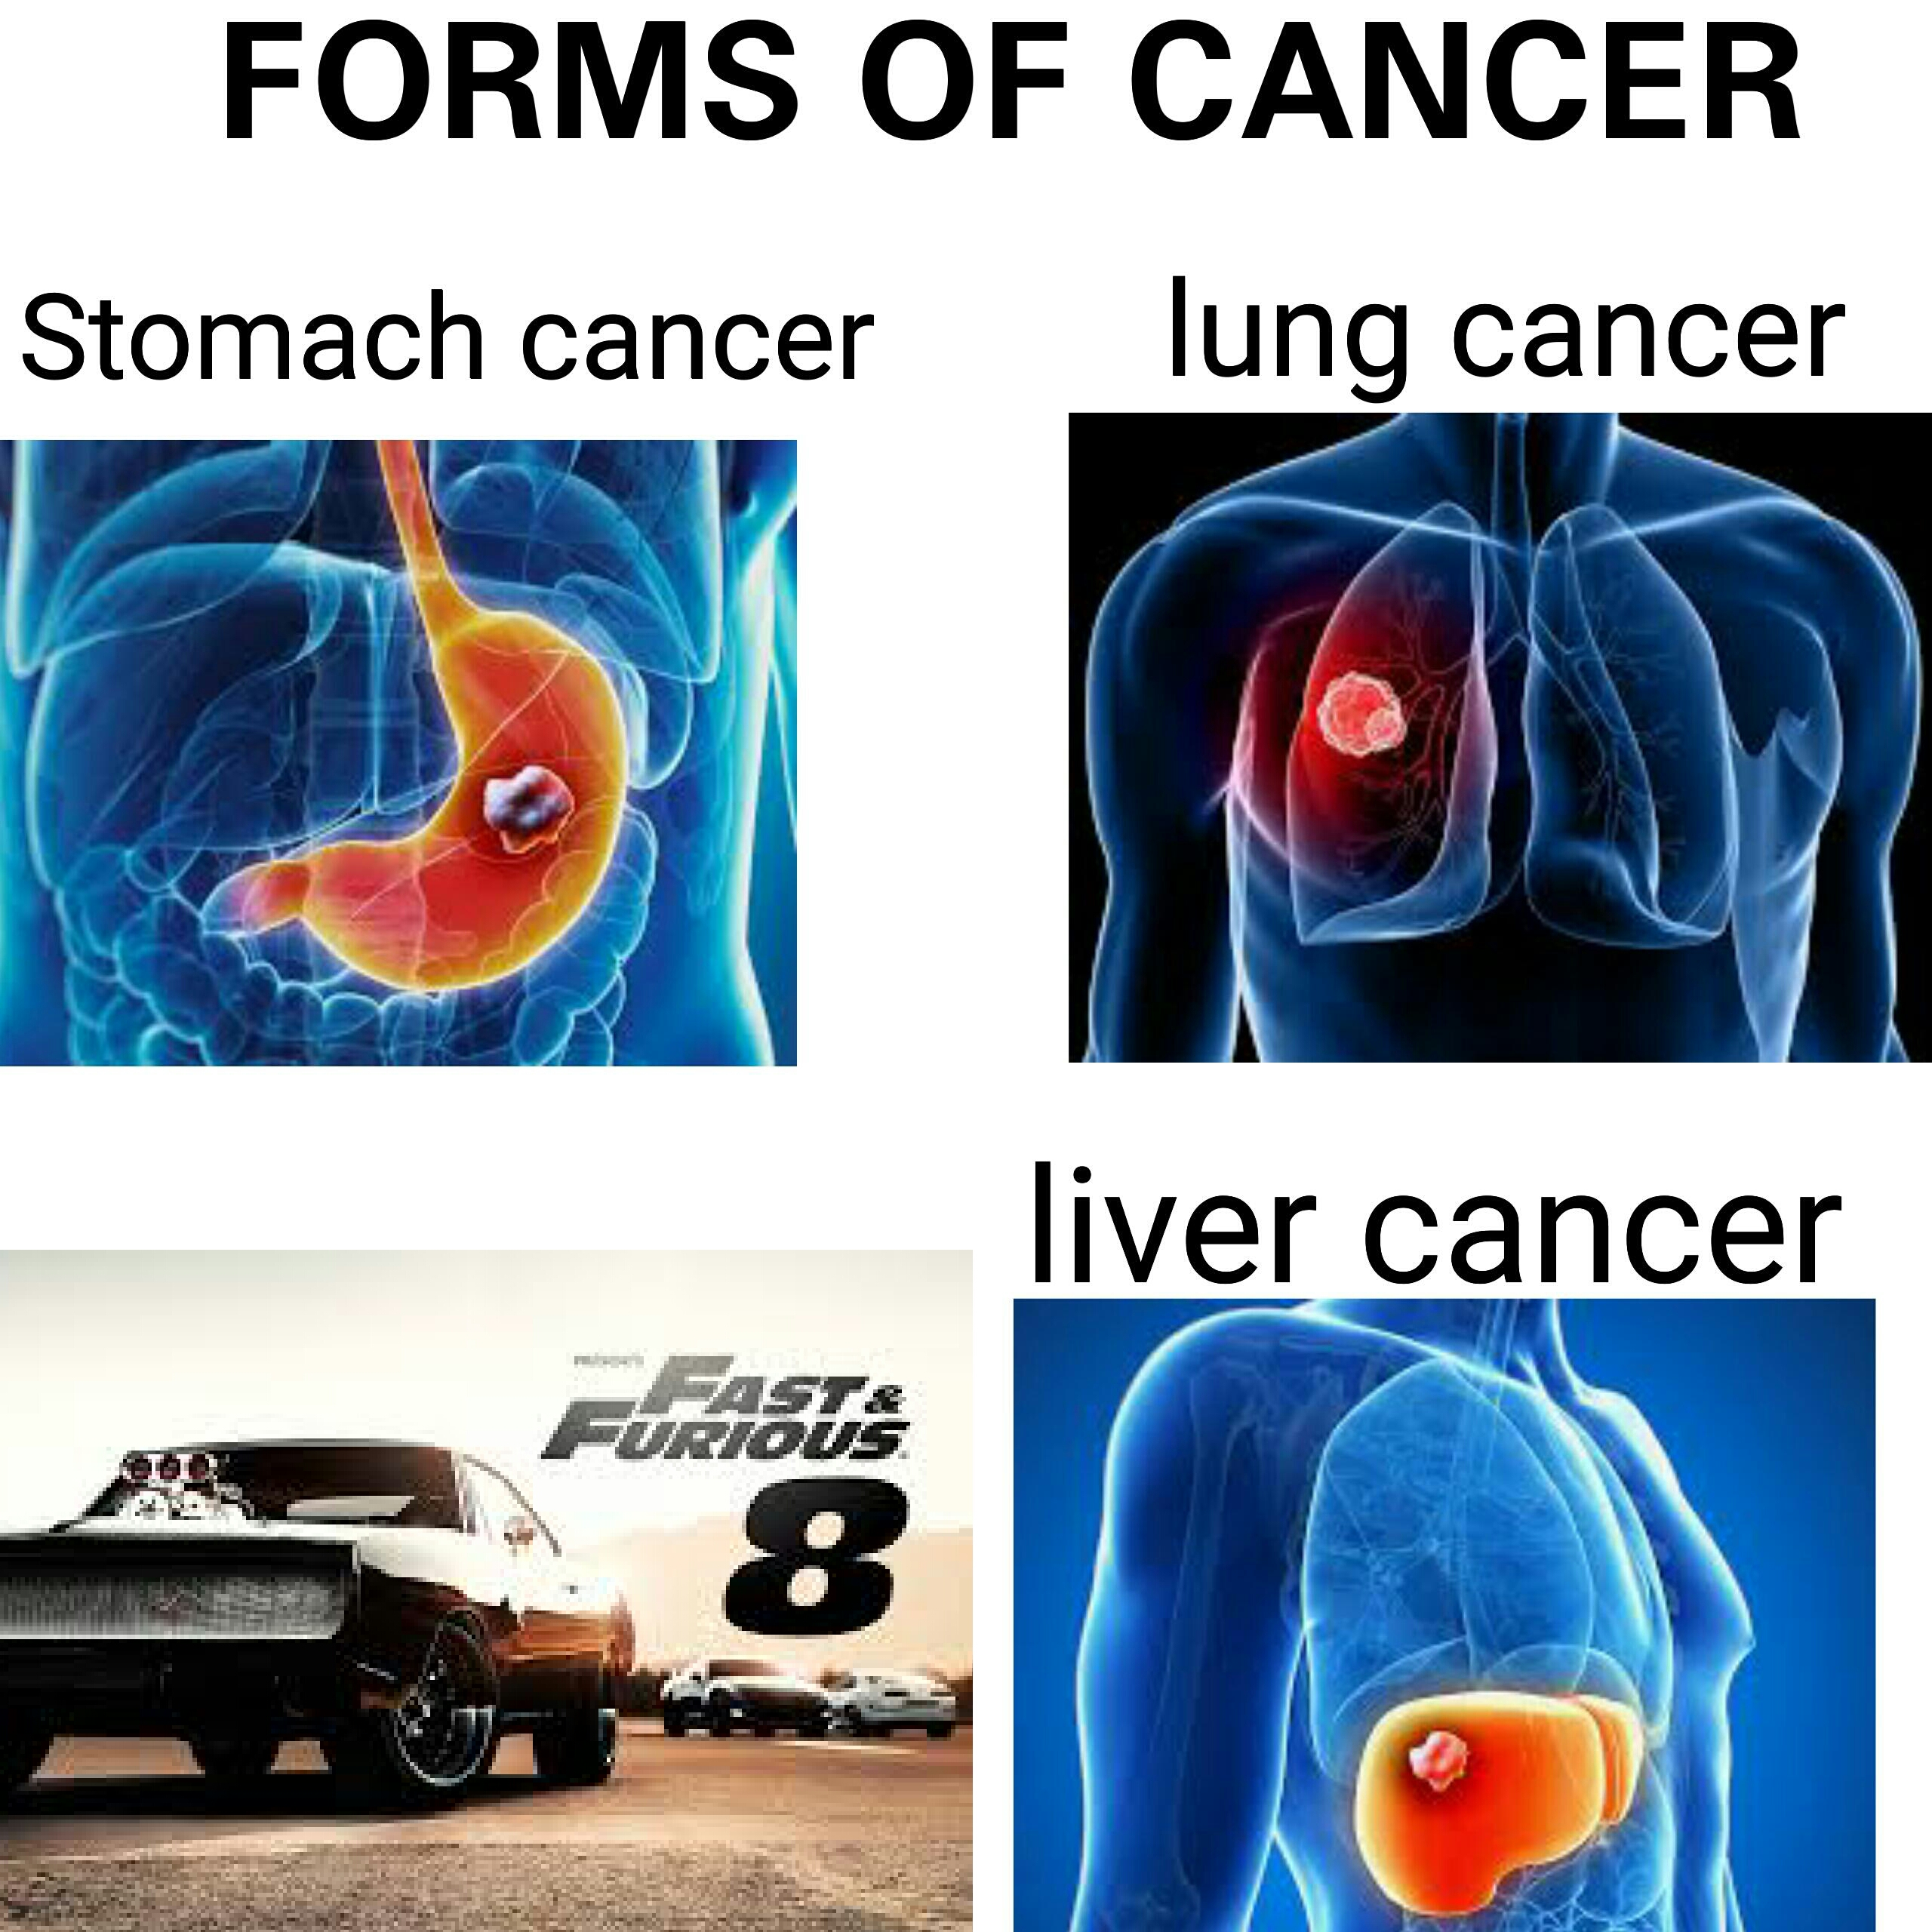 forms of cancer memes